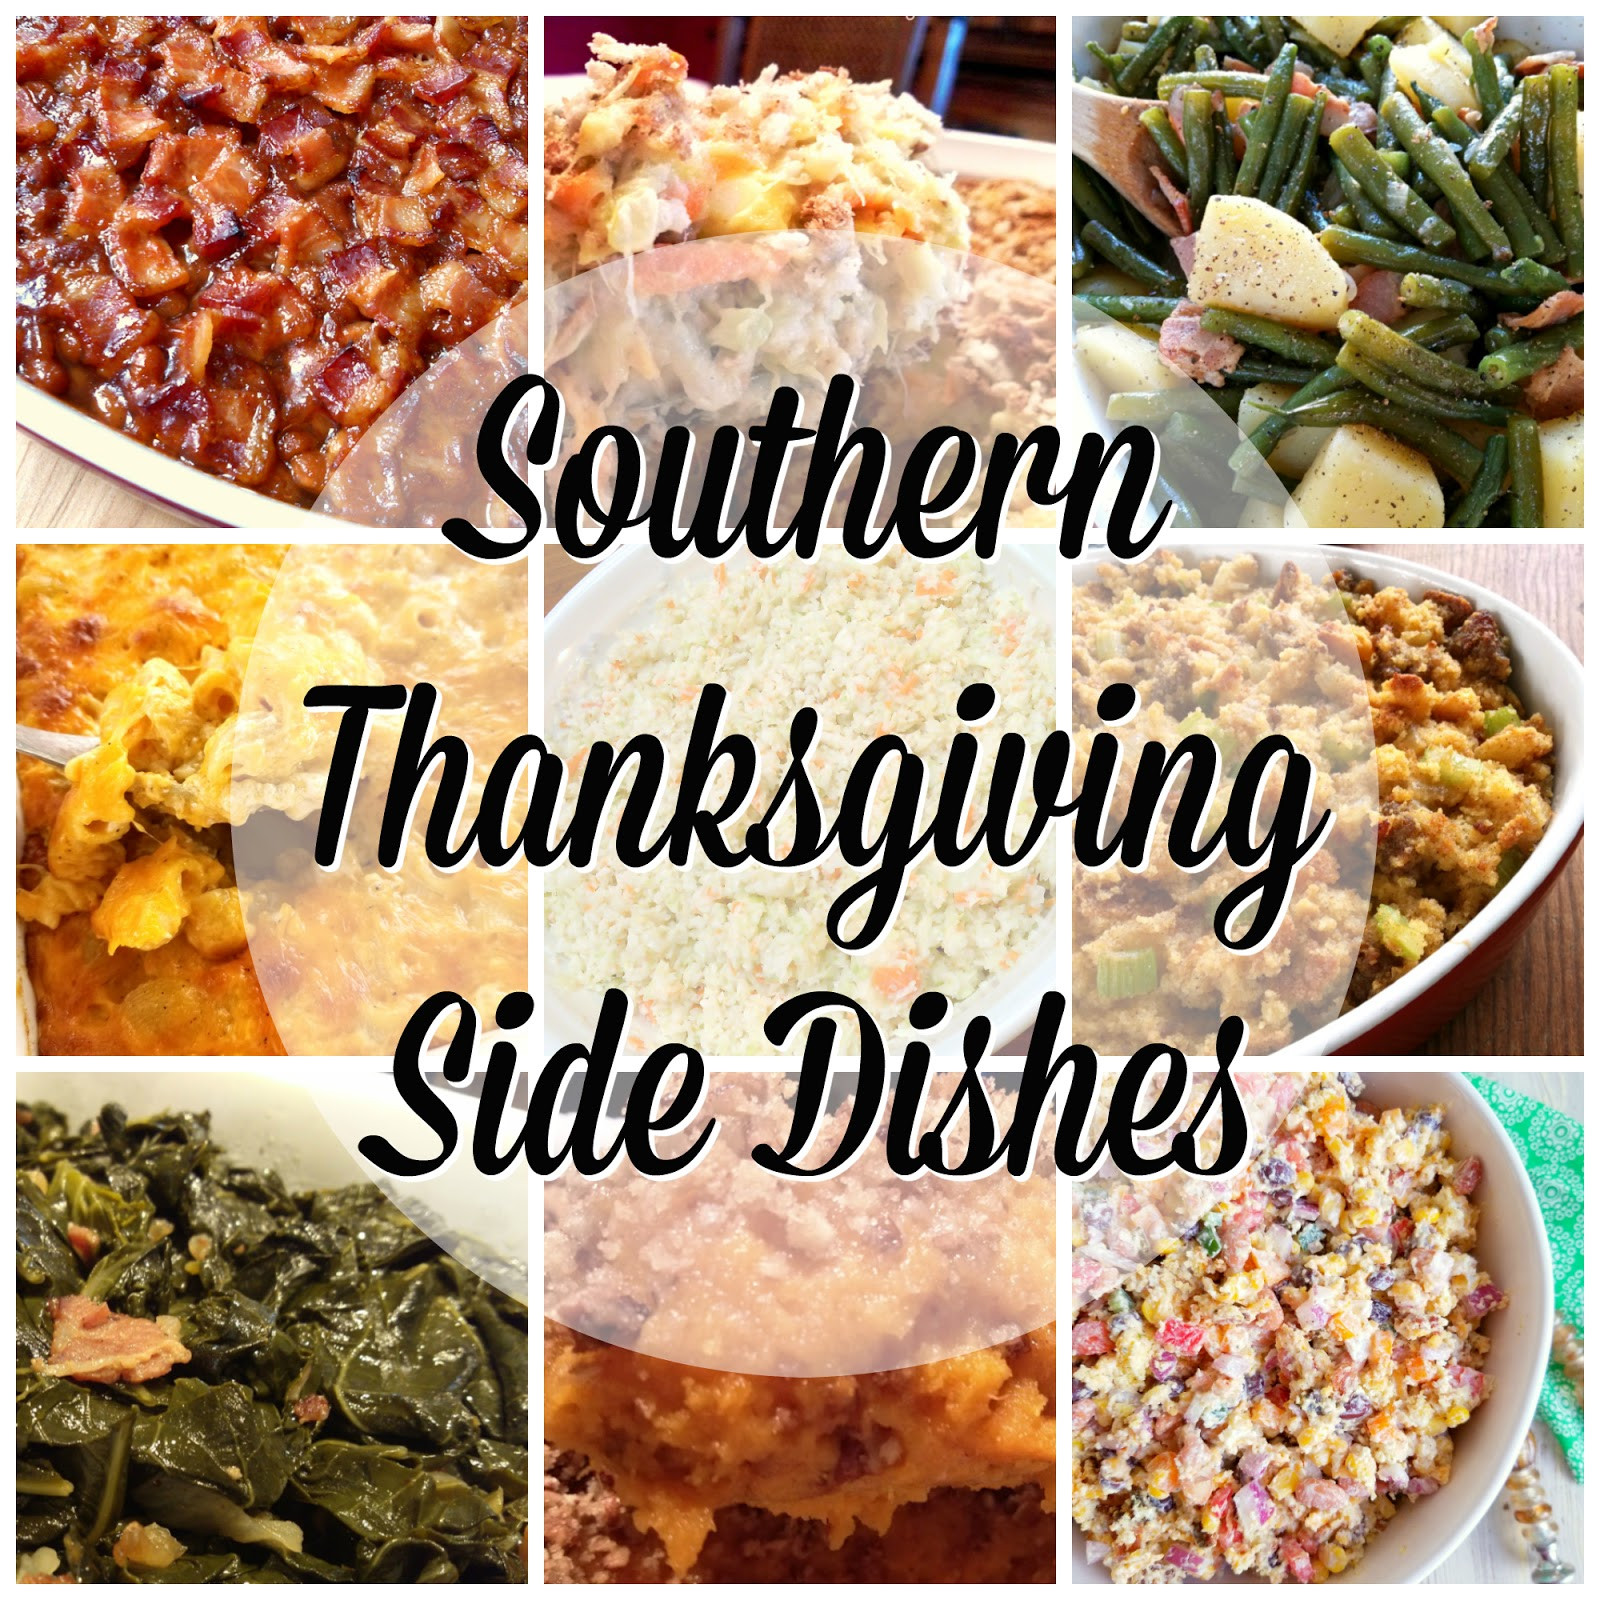 Southern Thanksgiving Side Dishes  South Your Mouth Southern Thanksgiving Side Dishes